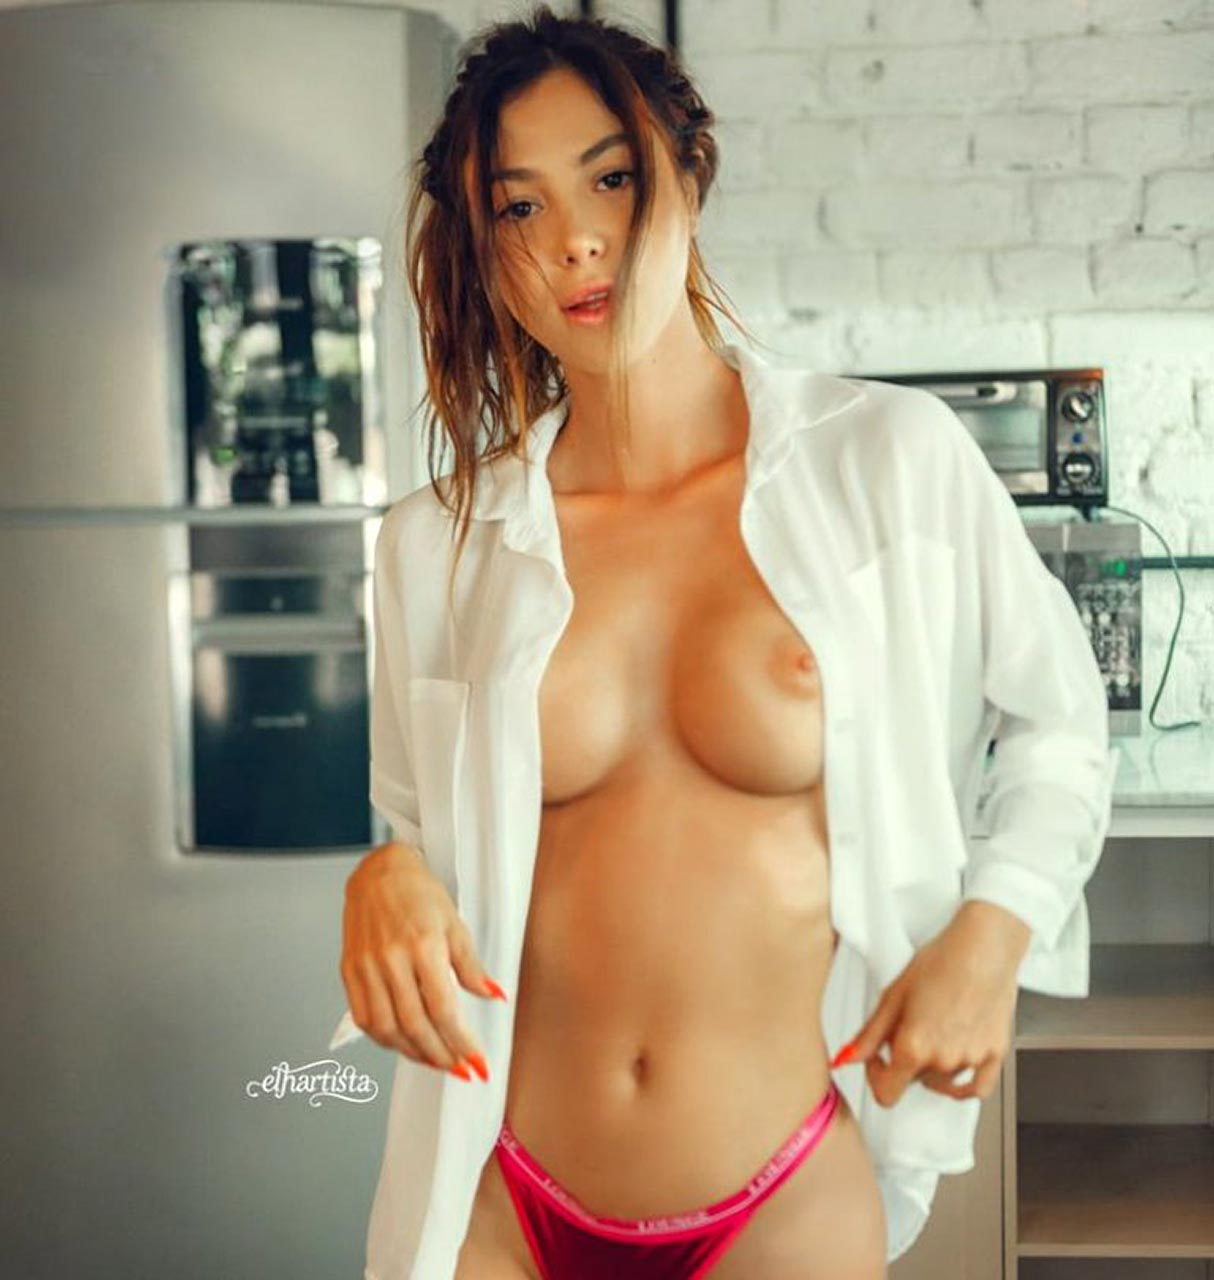 Claudia lynx nude pictures